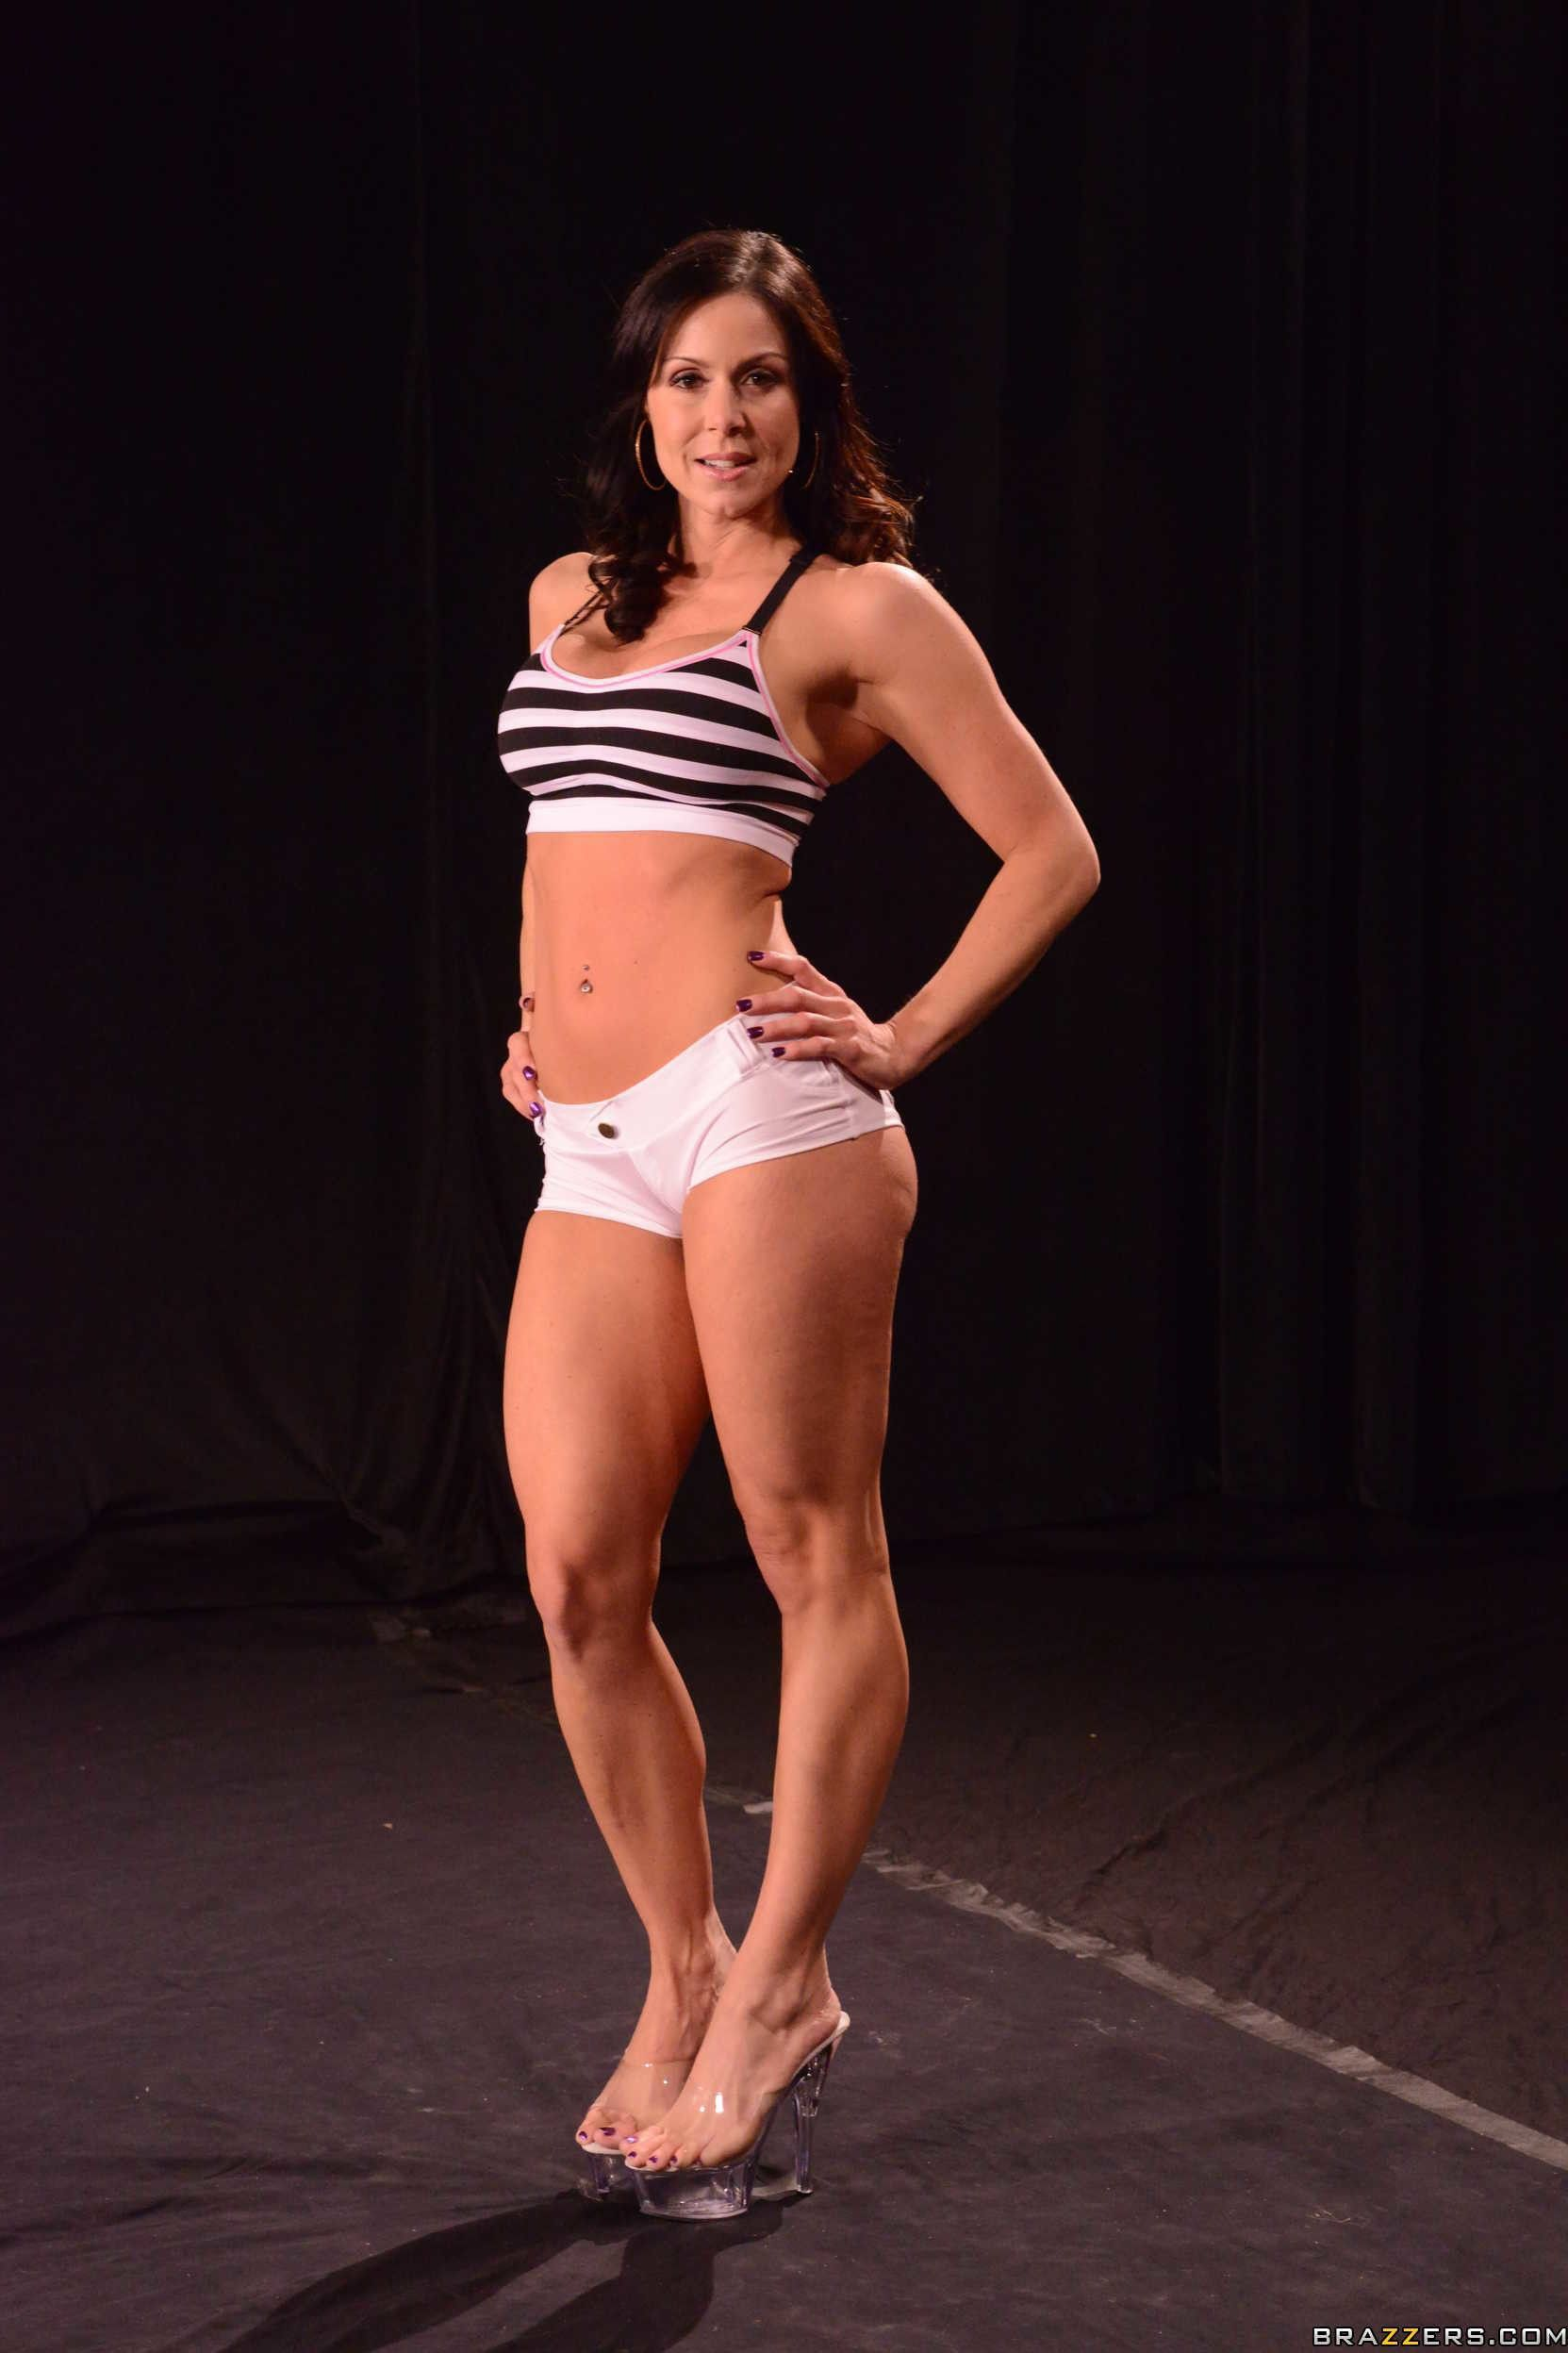 kendra lust workout in bikini | knock out women | pinterest | photo